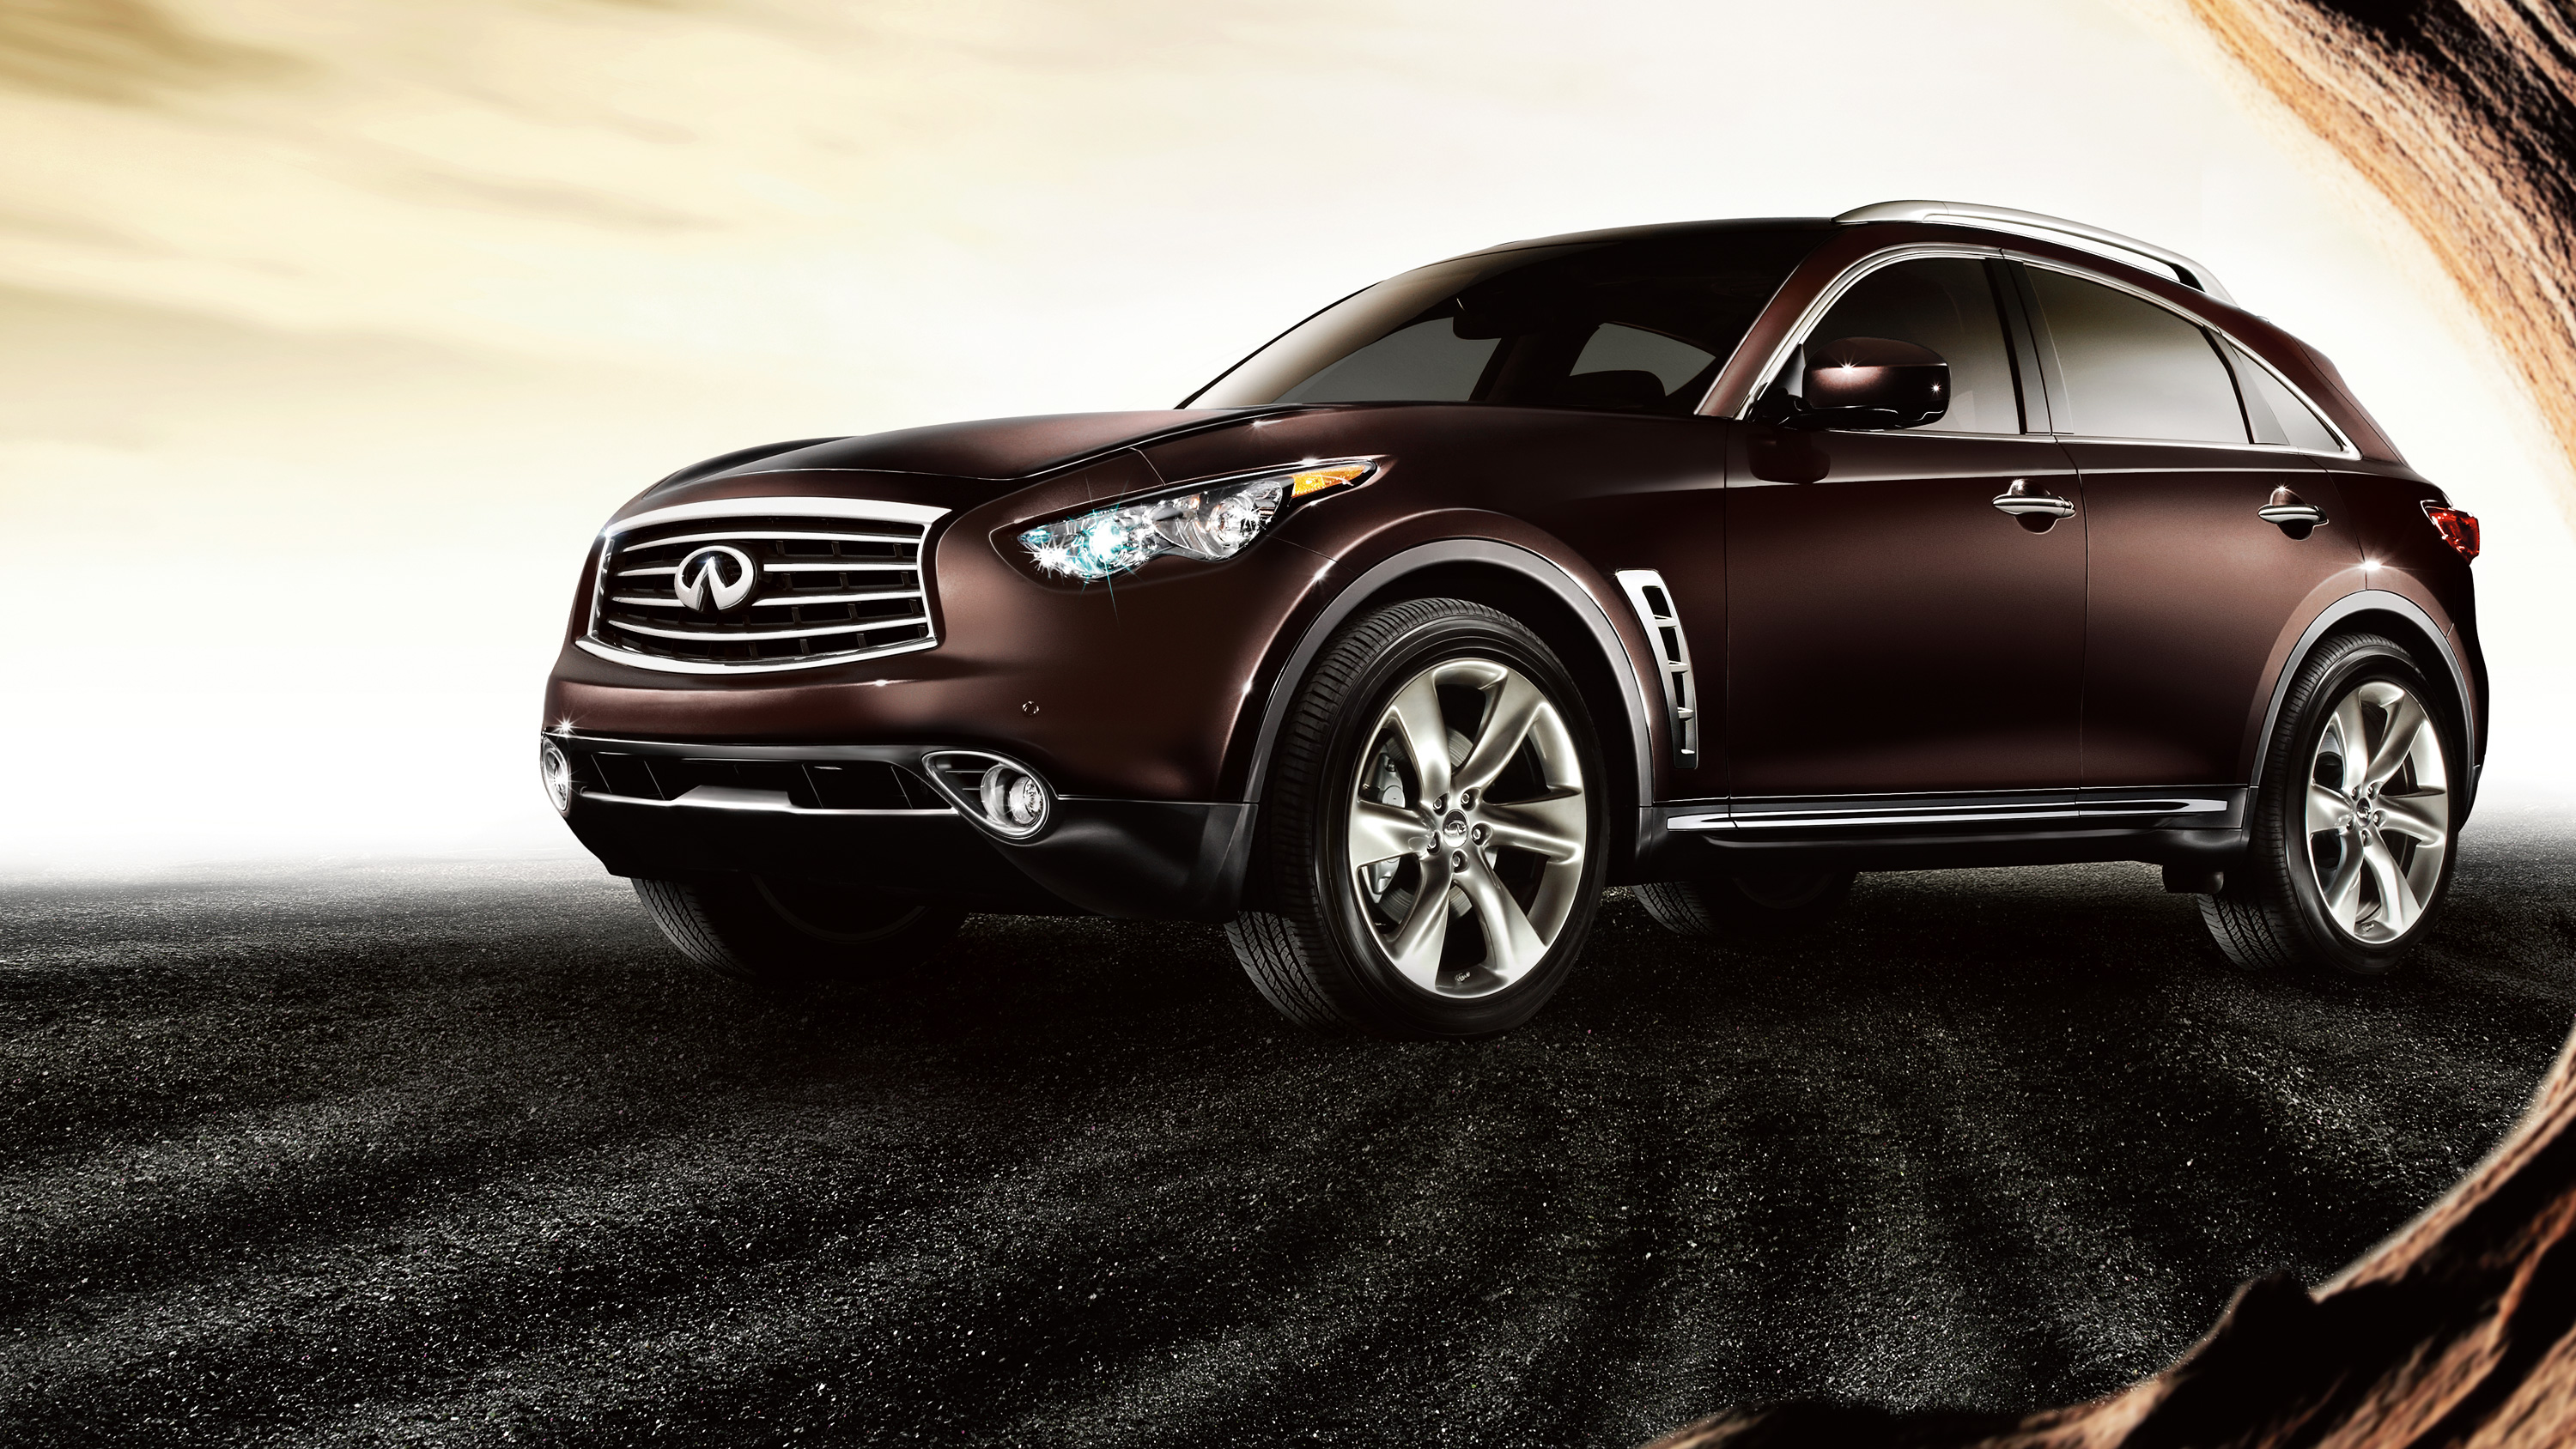 2014 infiniti qx70 a new name for crossover enjoyment auto industry suv the epoch times